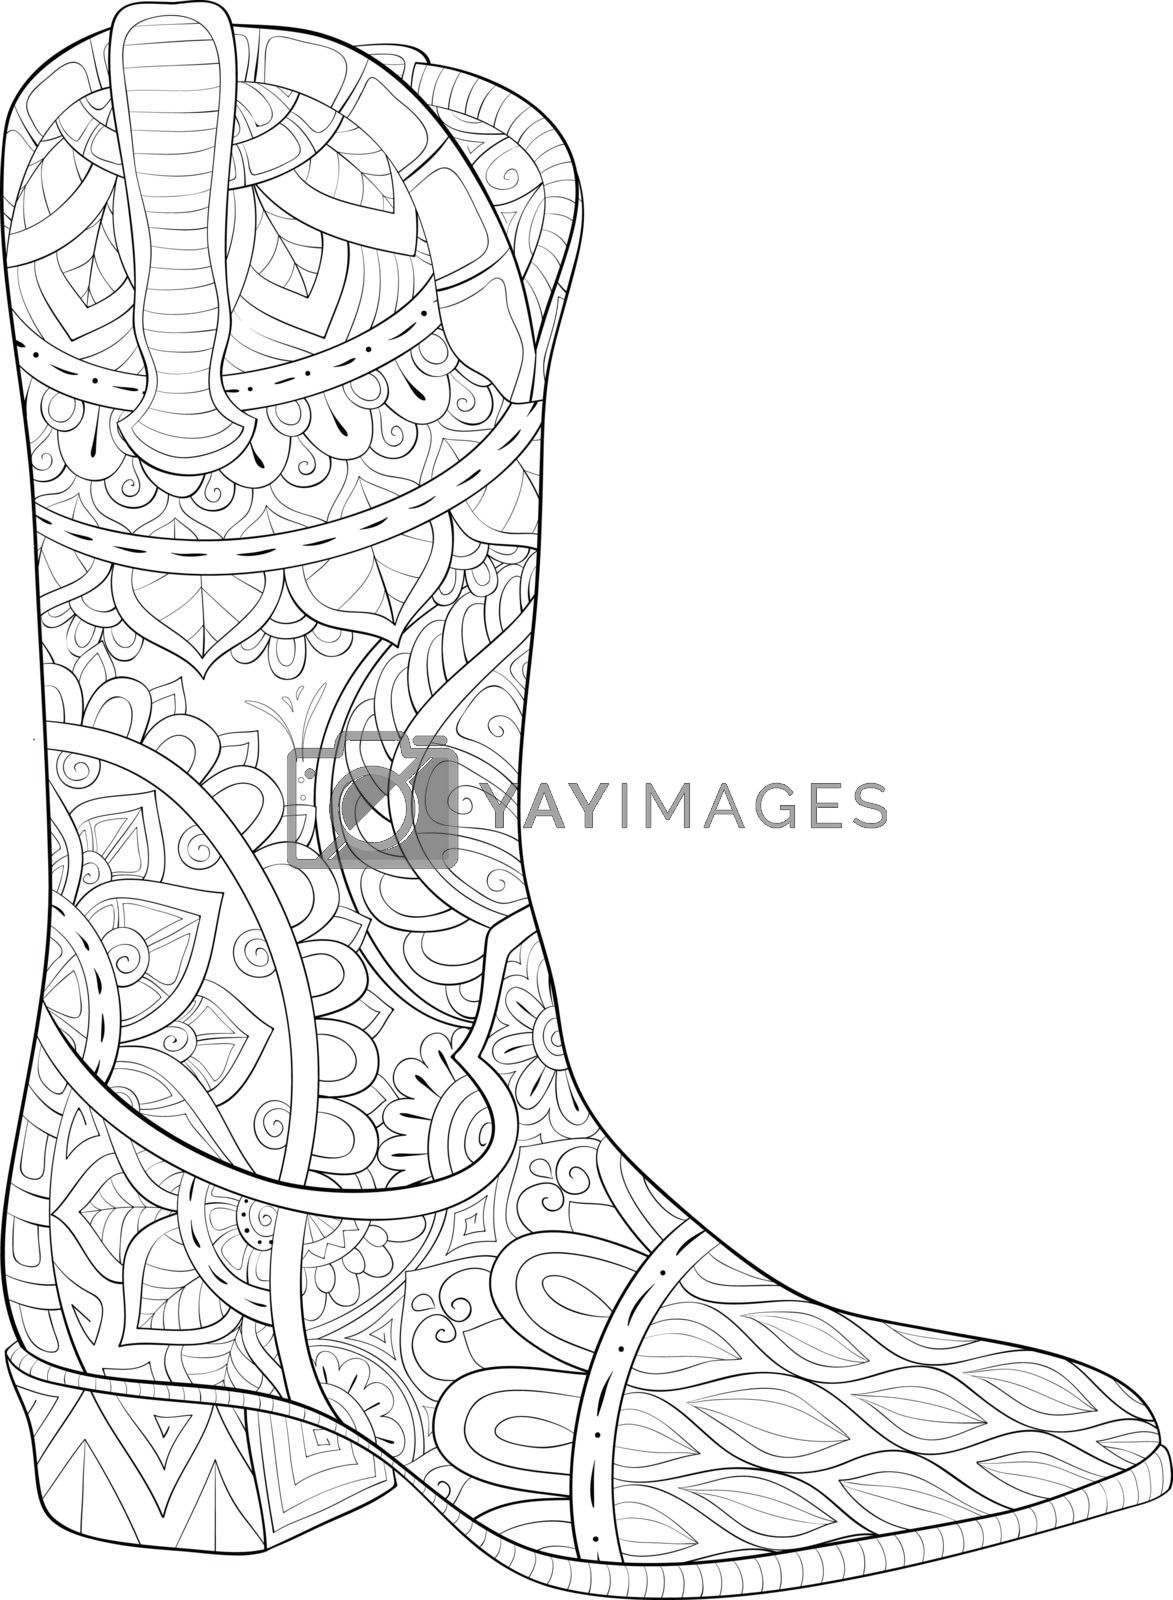 A cute boot with ornaments image for relaxing activity.Coloring book,page for adults.Zen art style illustration for print.Poster design.